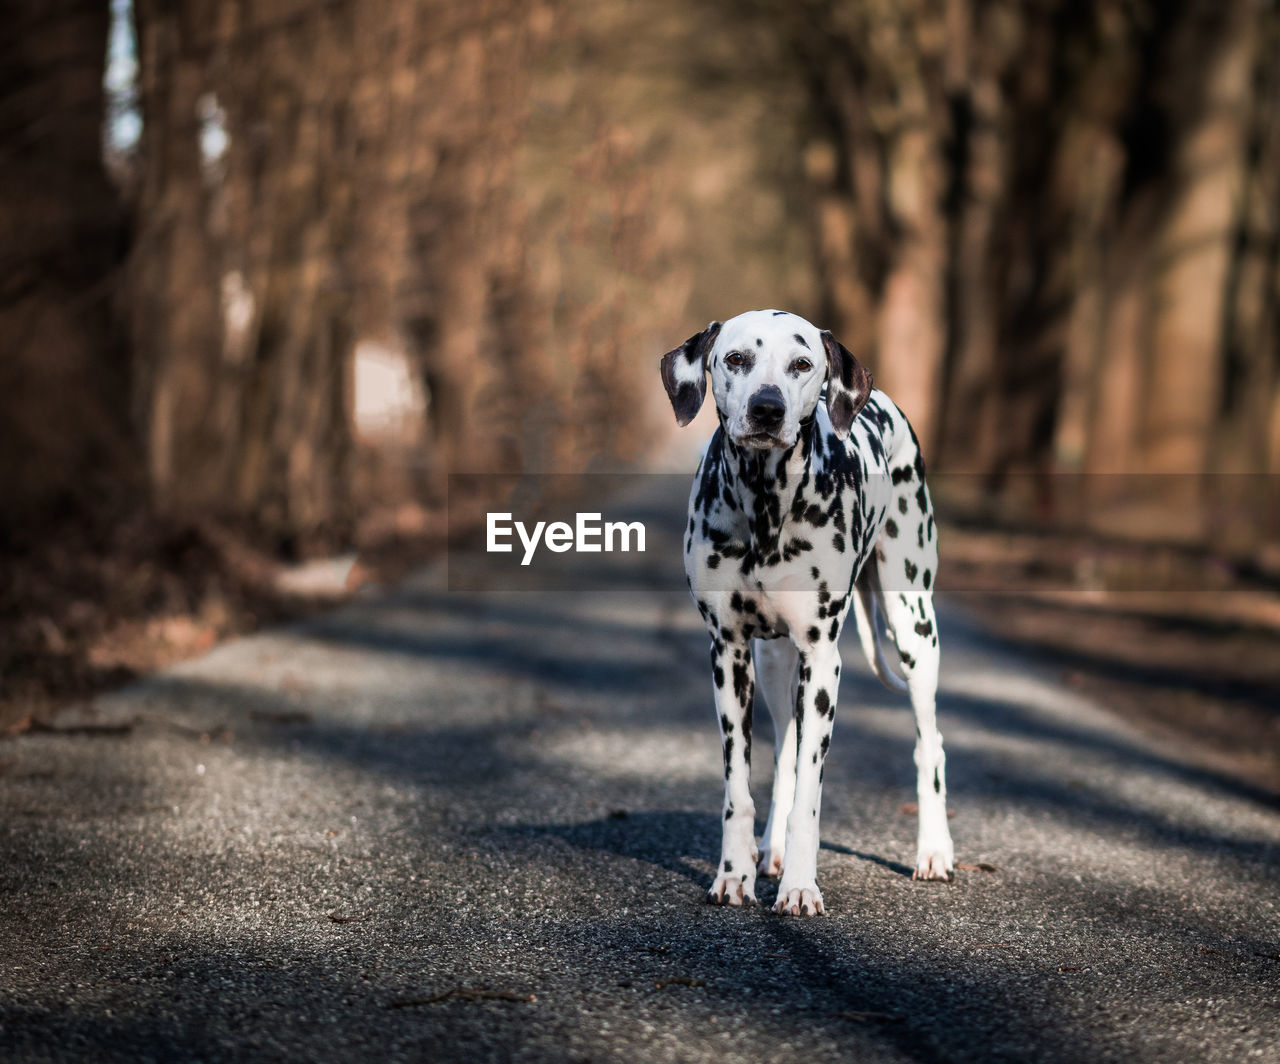 one animal, mammal, animal themes, animal, dalmatian dog, domestic animals, dog, pets, canine, vertebrate, domestic, spotted, focus on foreground, day, road, no people, animal markings, full length, nature, motion